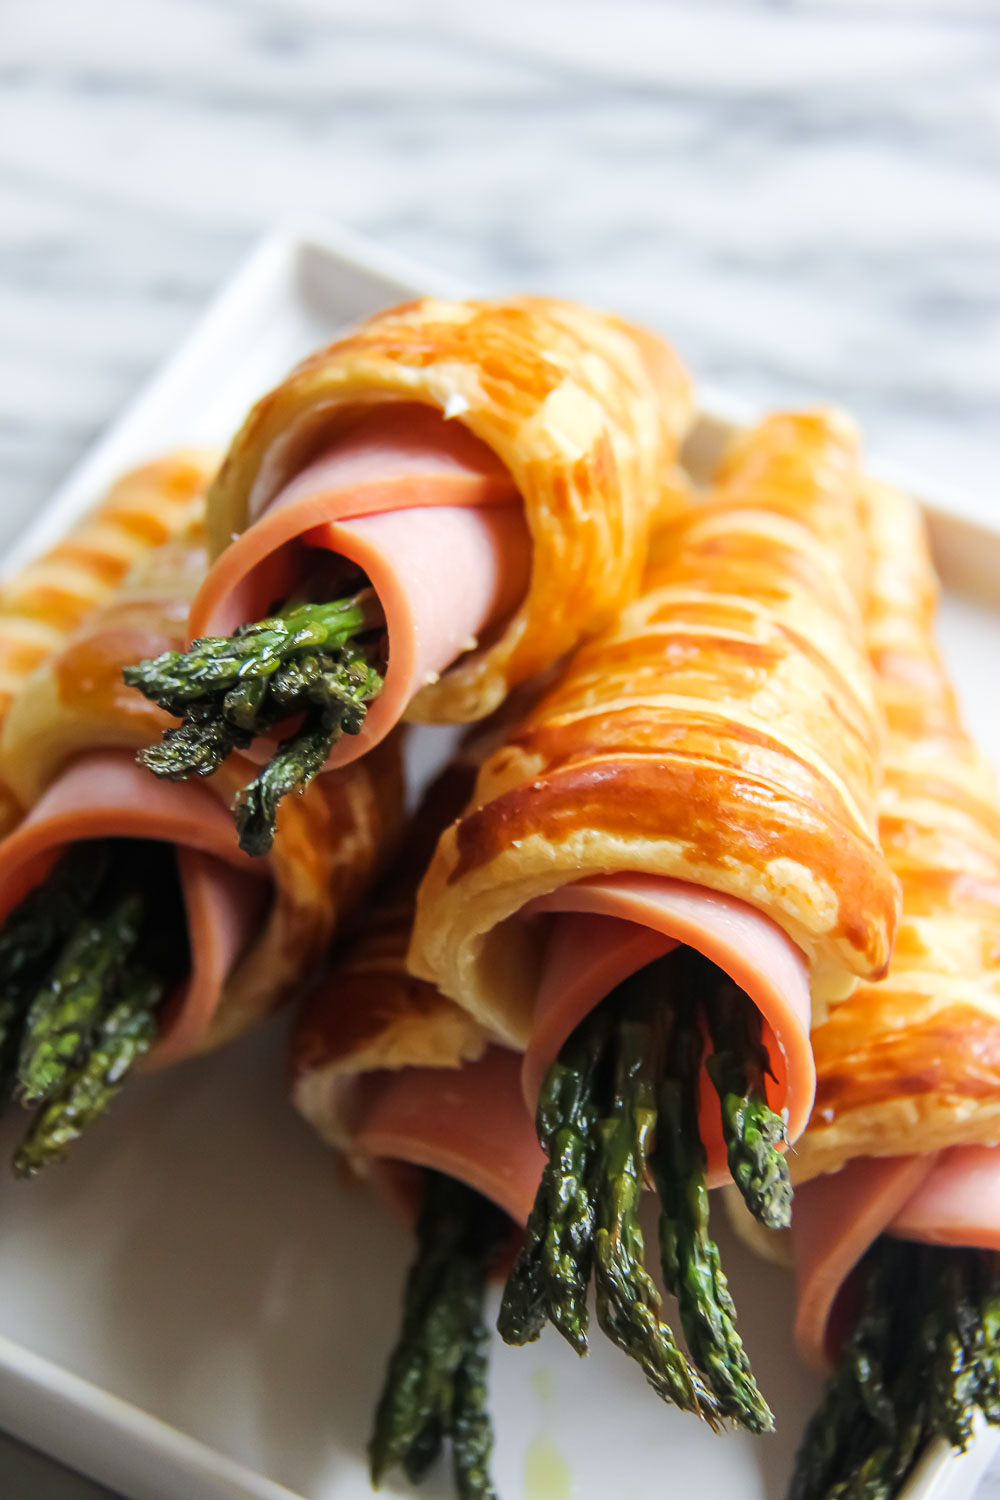 The puff pastry cone is a crunchy perfection that your family & friends will love! Here's to savoring the beginning of Summertime with Creamy Asparagus Puffs!